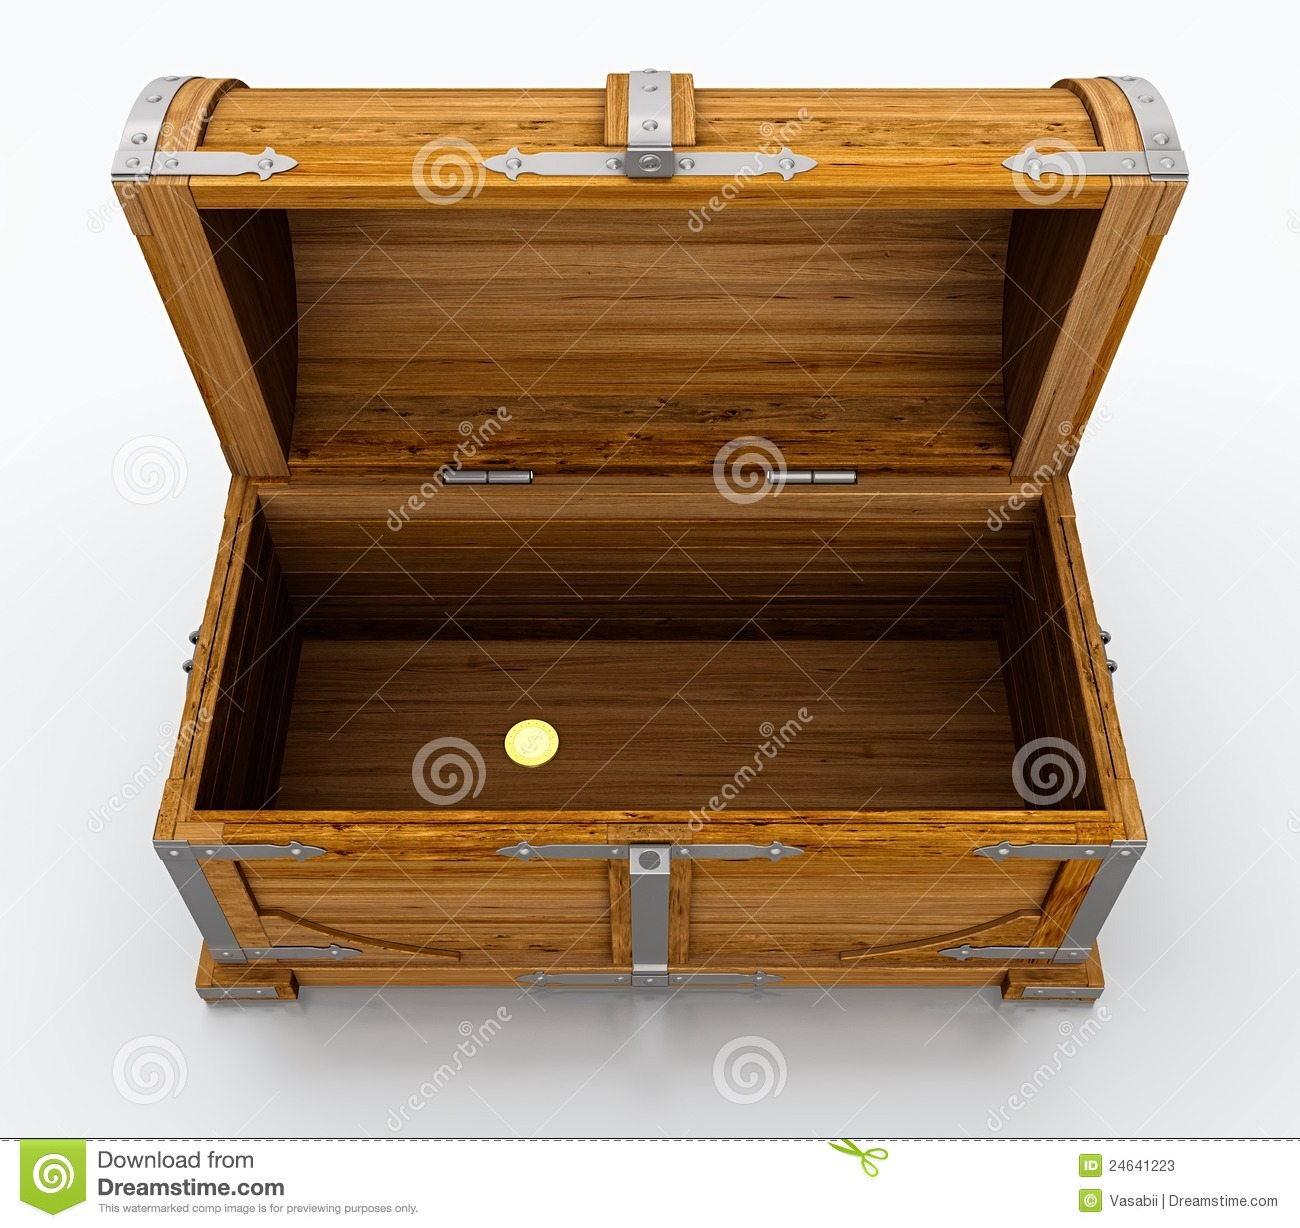 Empty treasure chest isolated on white background.